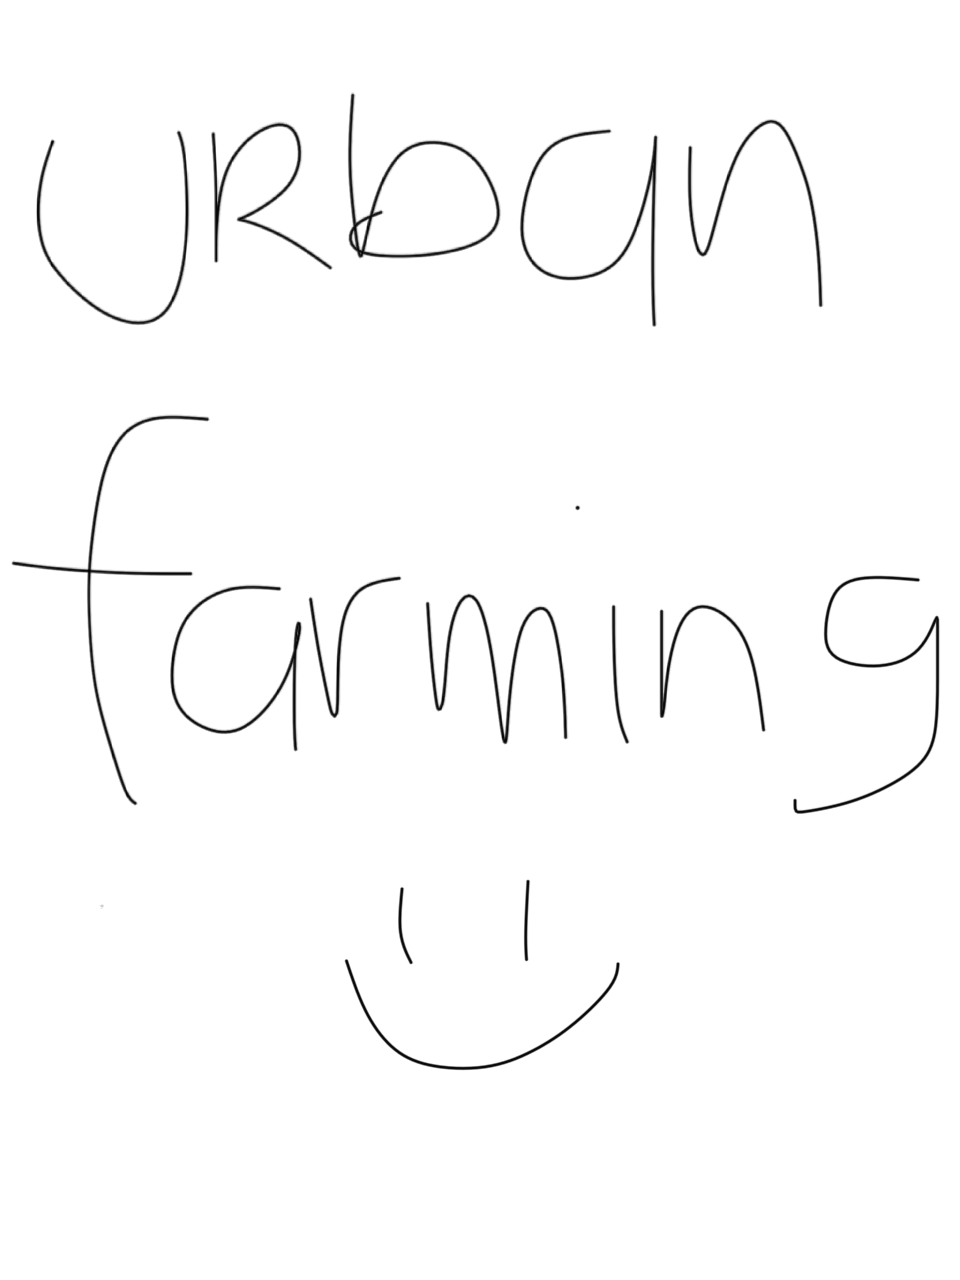 First, let's learn organic farming!